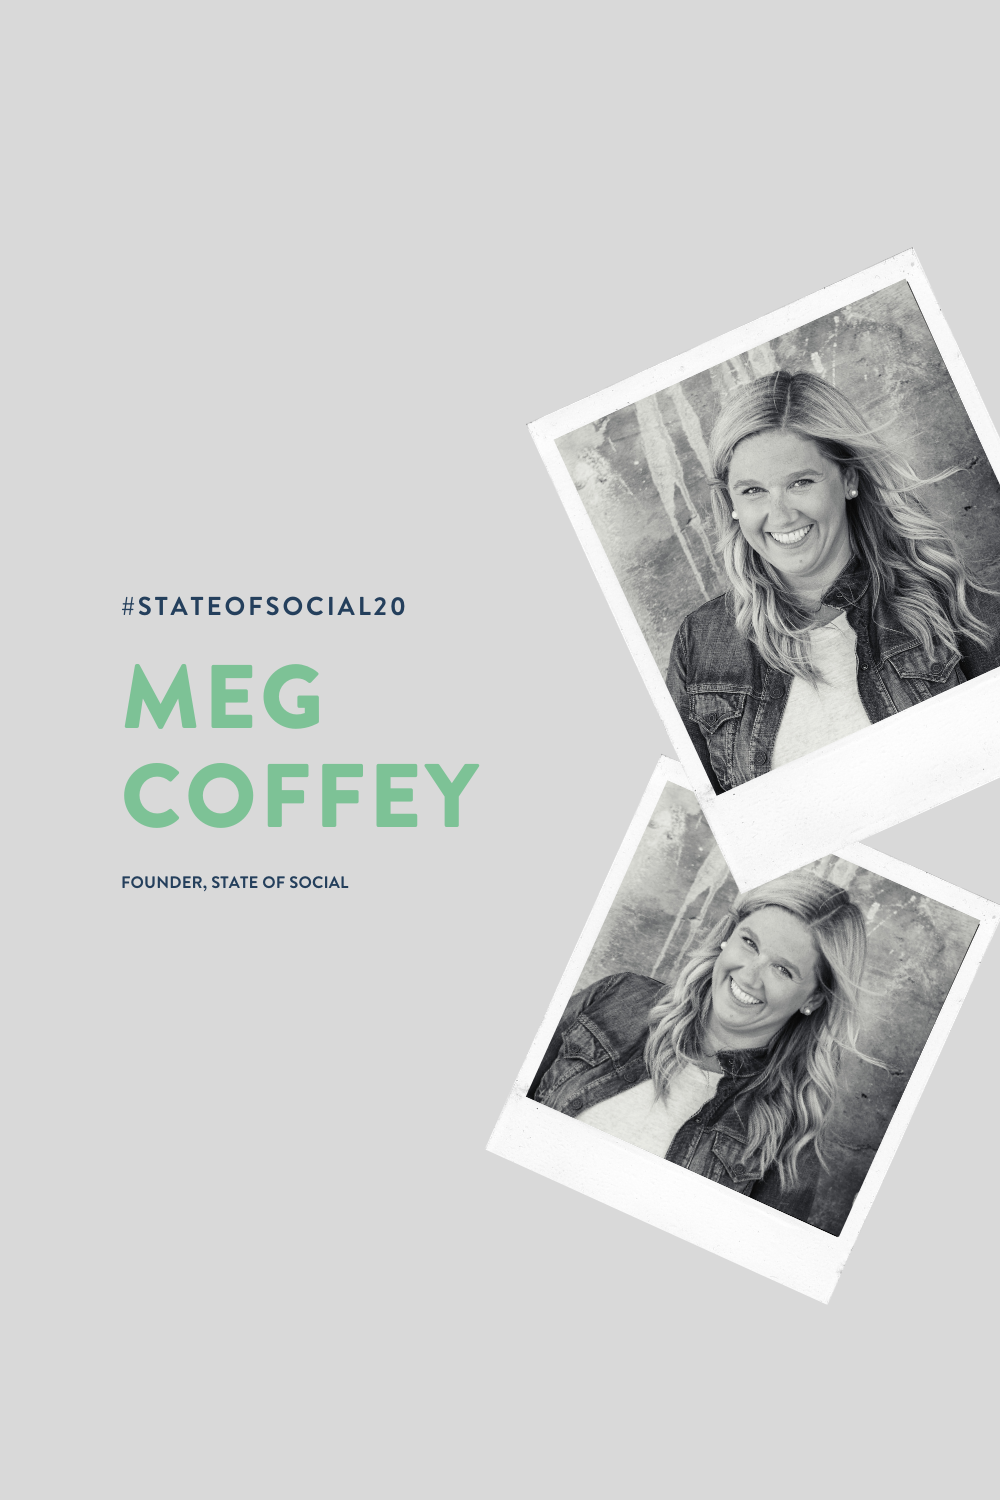 Social media and digital marketing strategist Meg Coffey is a trainer, lecturer, media commentator, and award-winning entrepreneur.